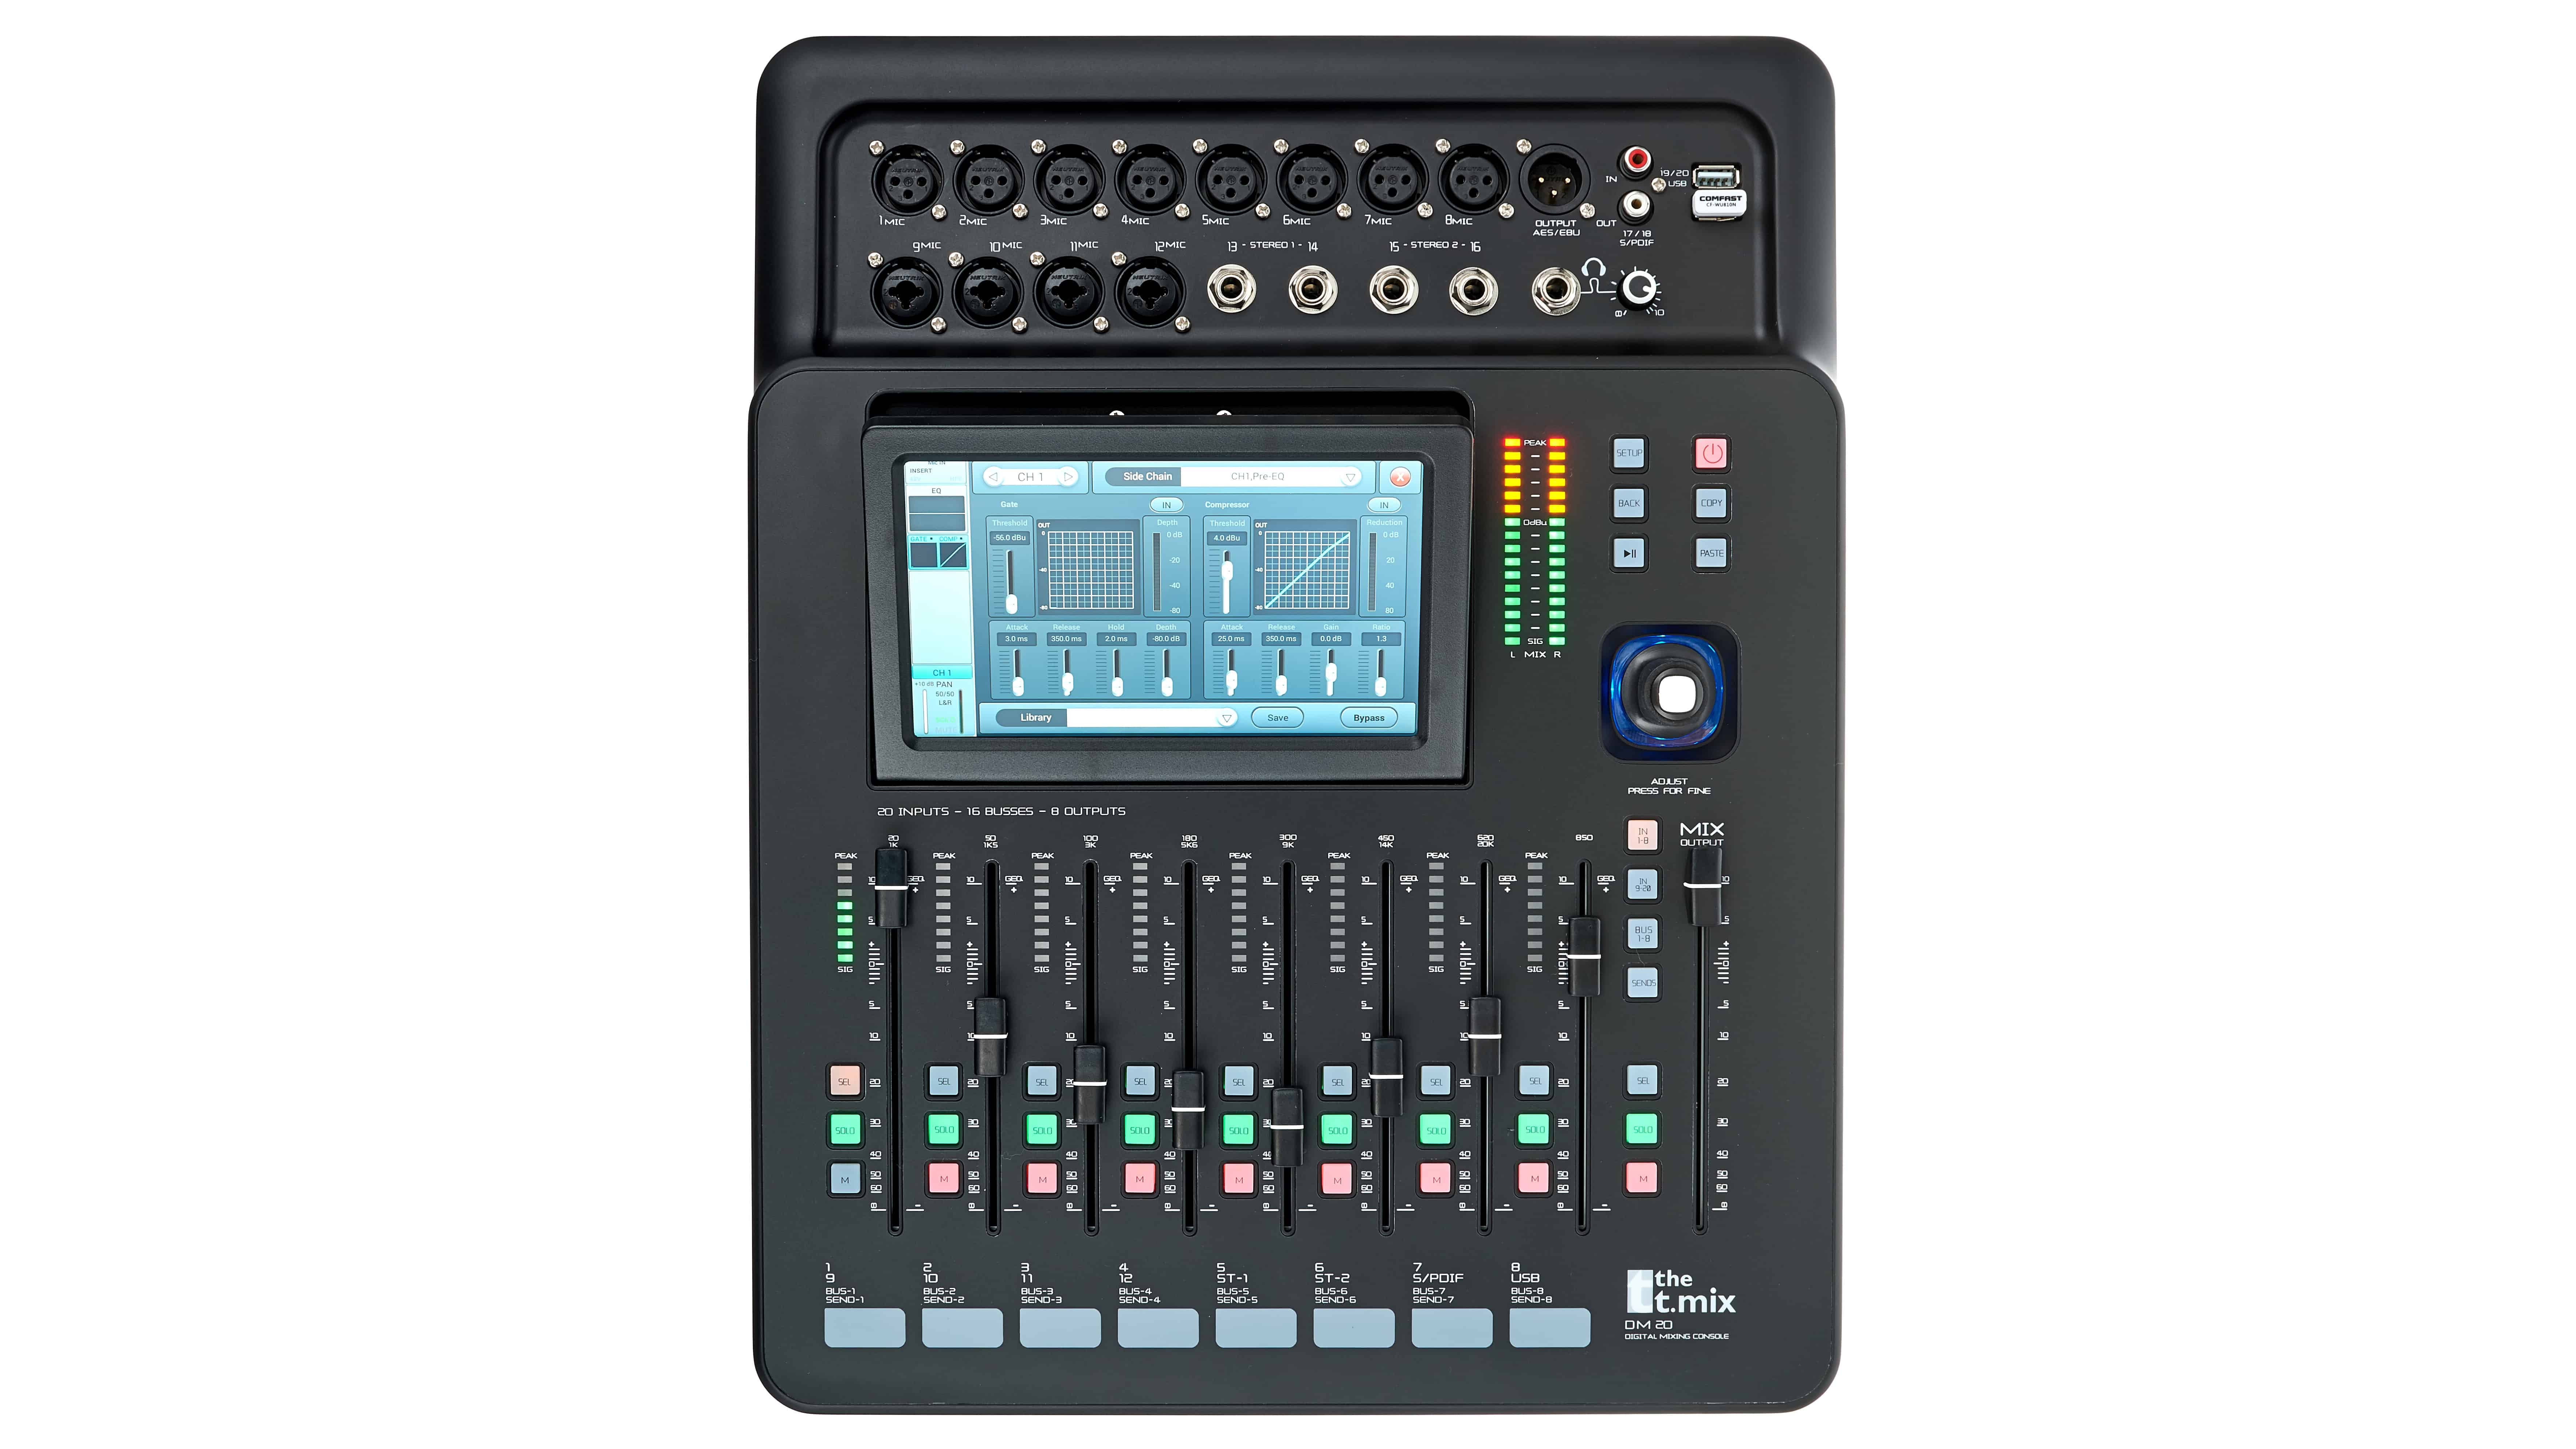 the t.mix DM 20